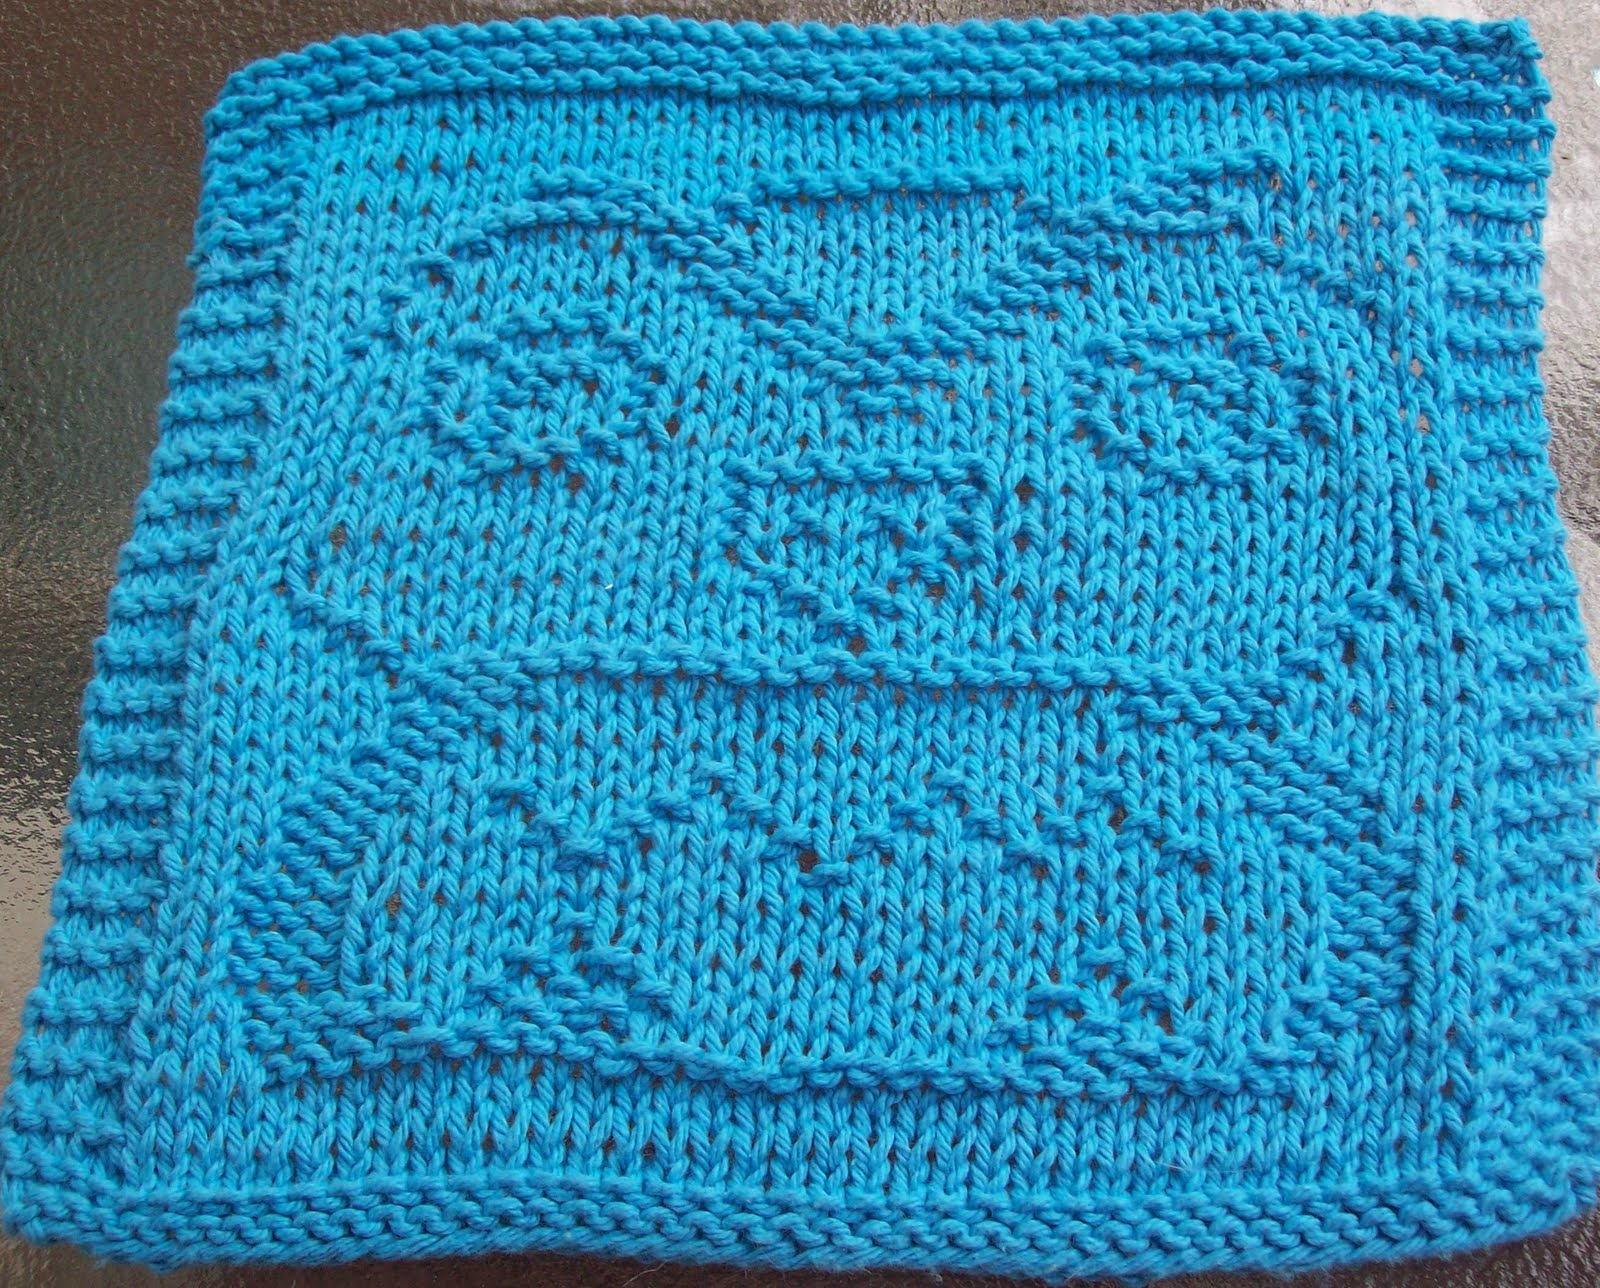 Knit Dishcloths Free Patterns : KNITTED PATTERNS FOR DISHCLOTHS   Browse Patterns